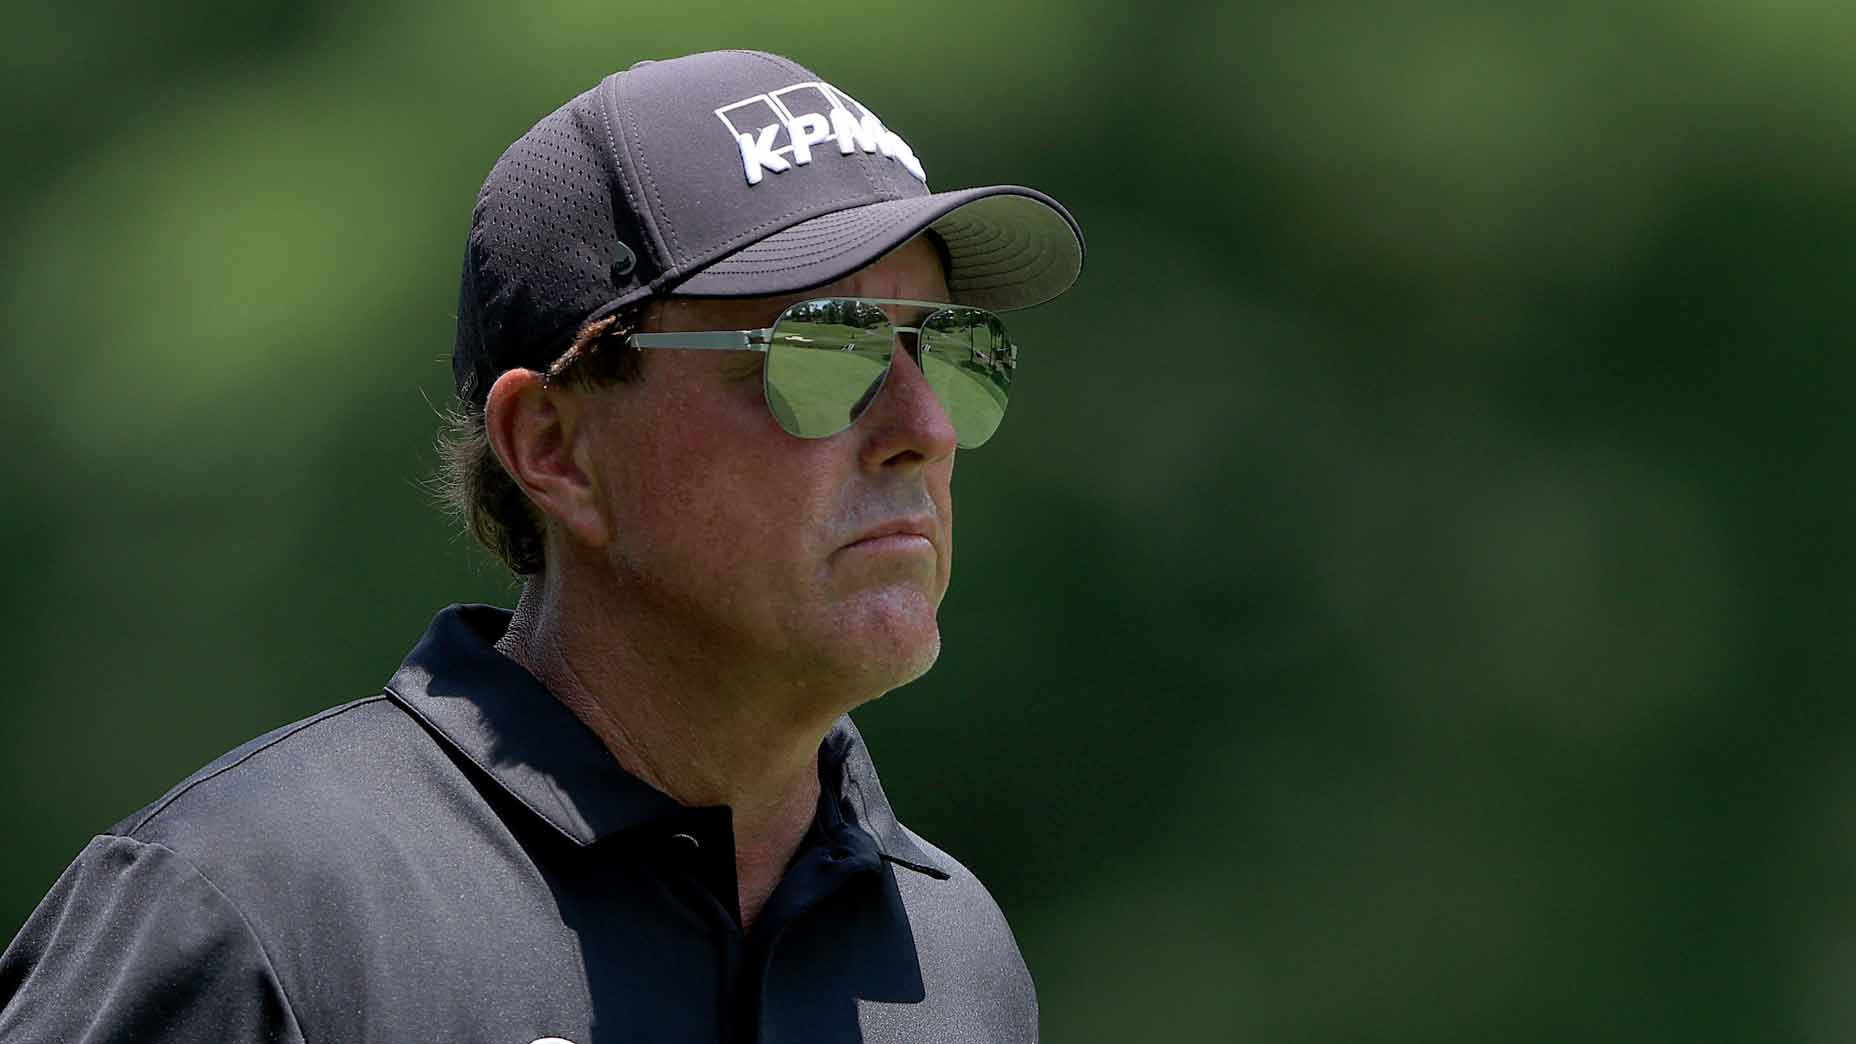 Phil Mickelson sunglasses